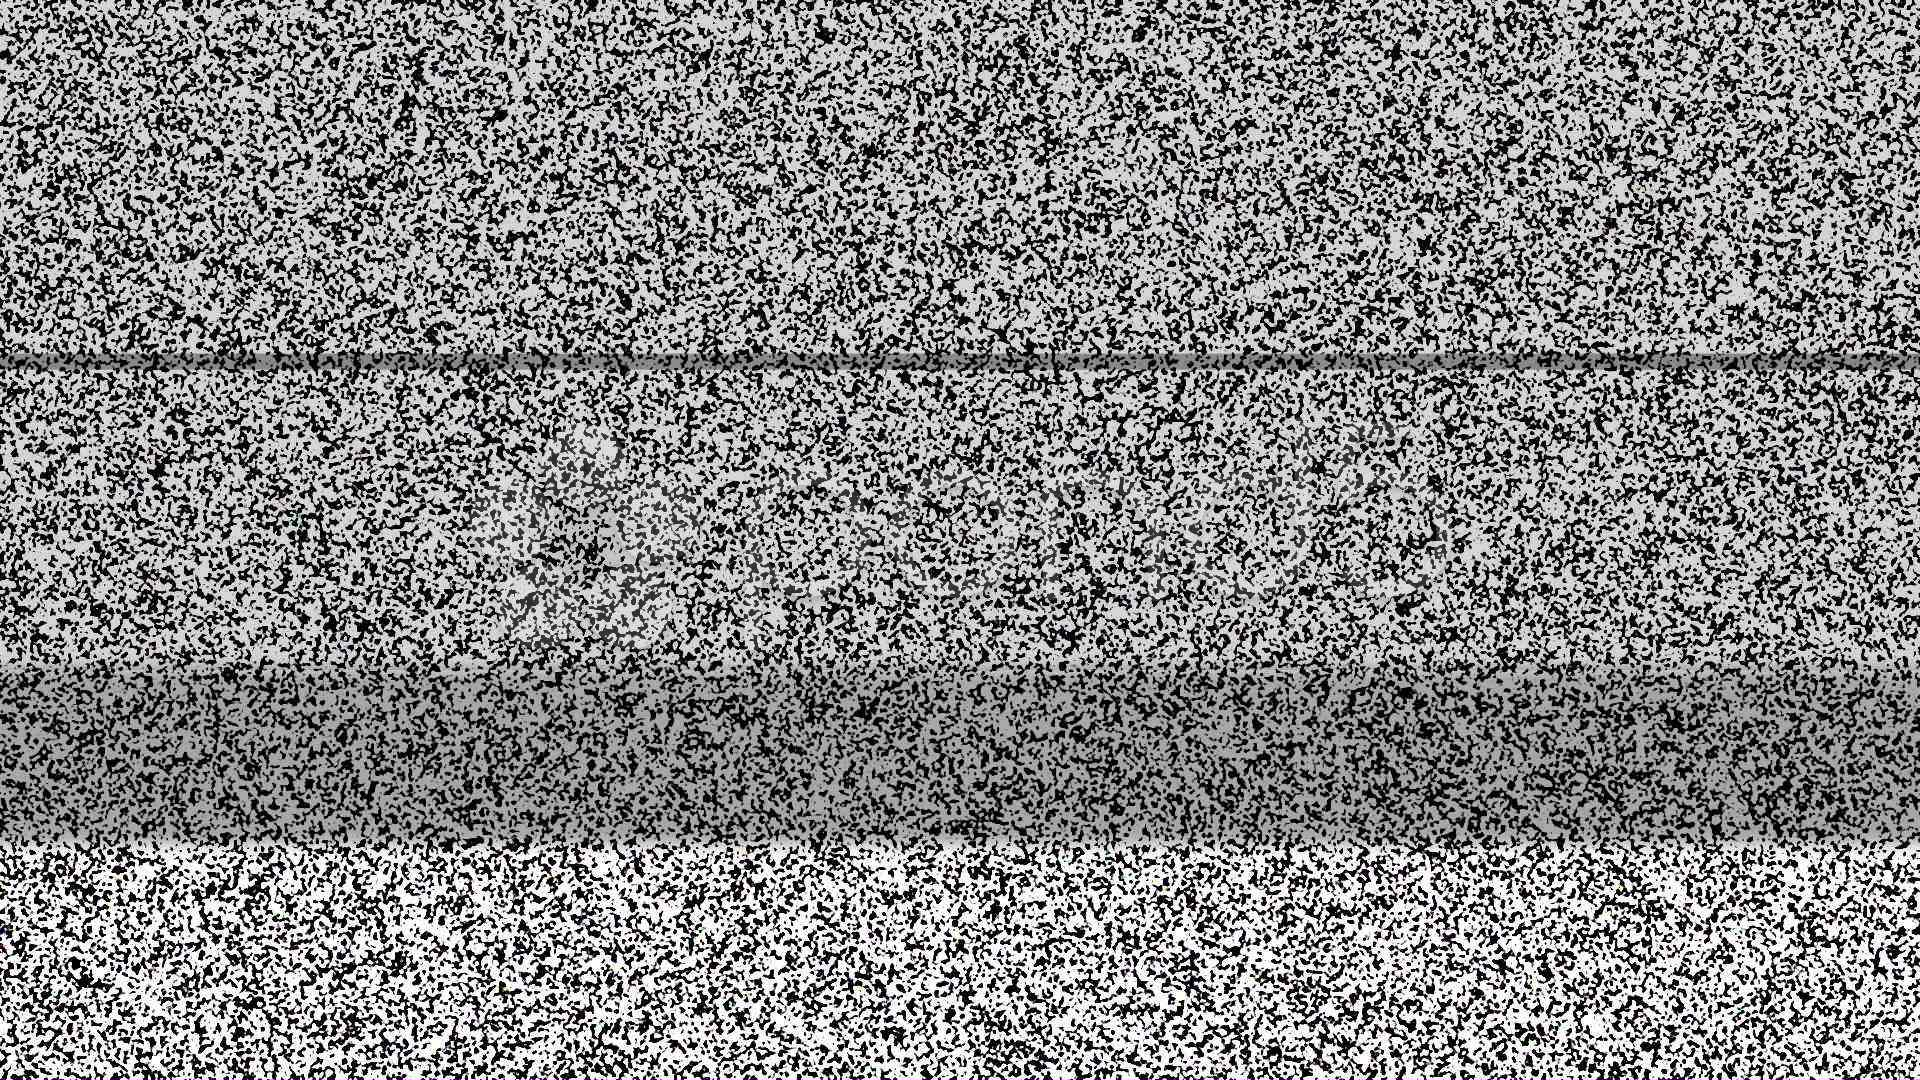 TV Static Wallpaper - WallpaperSafari